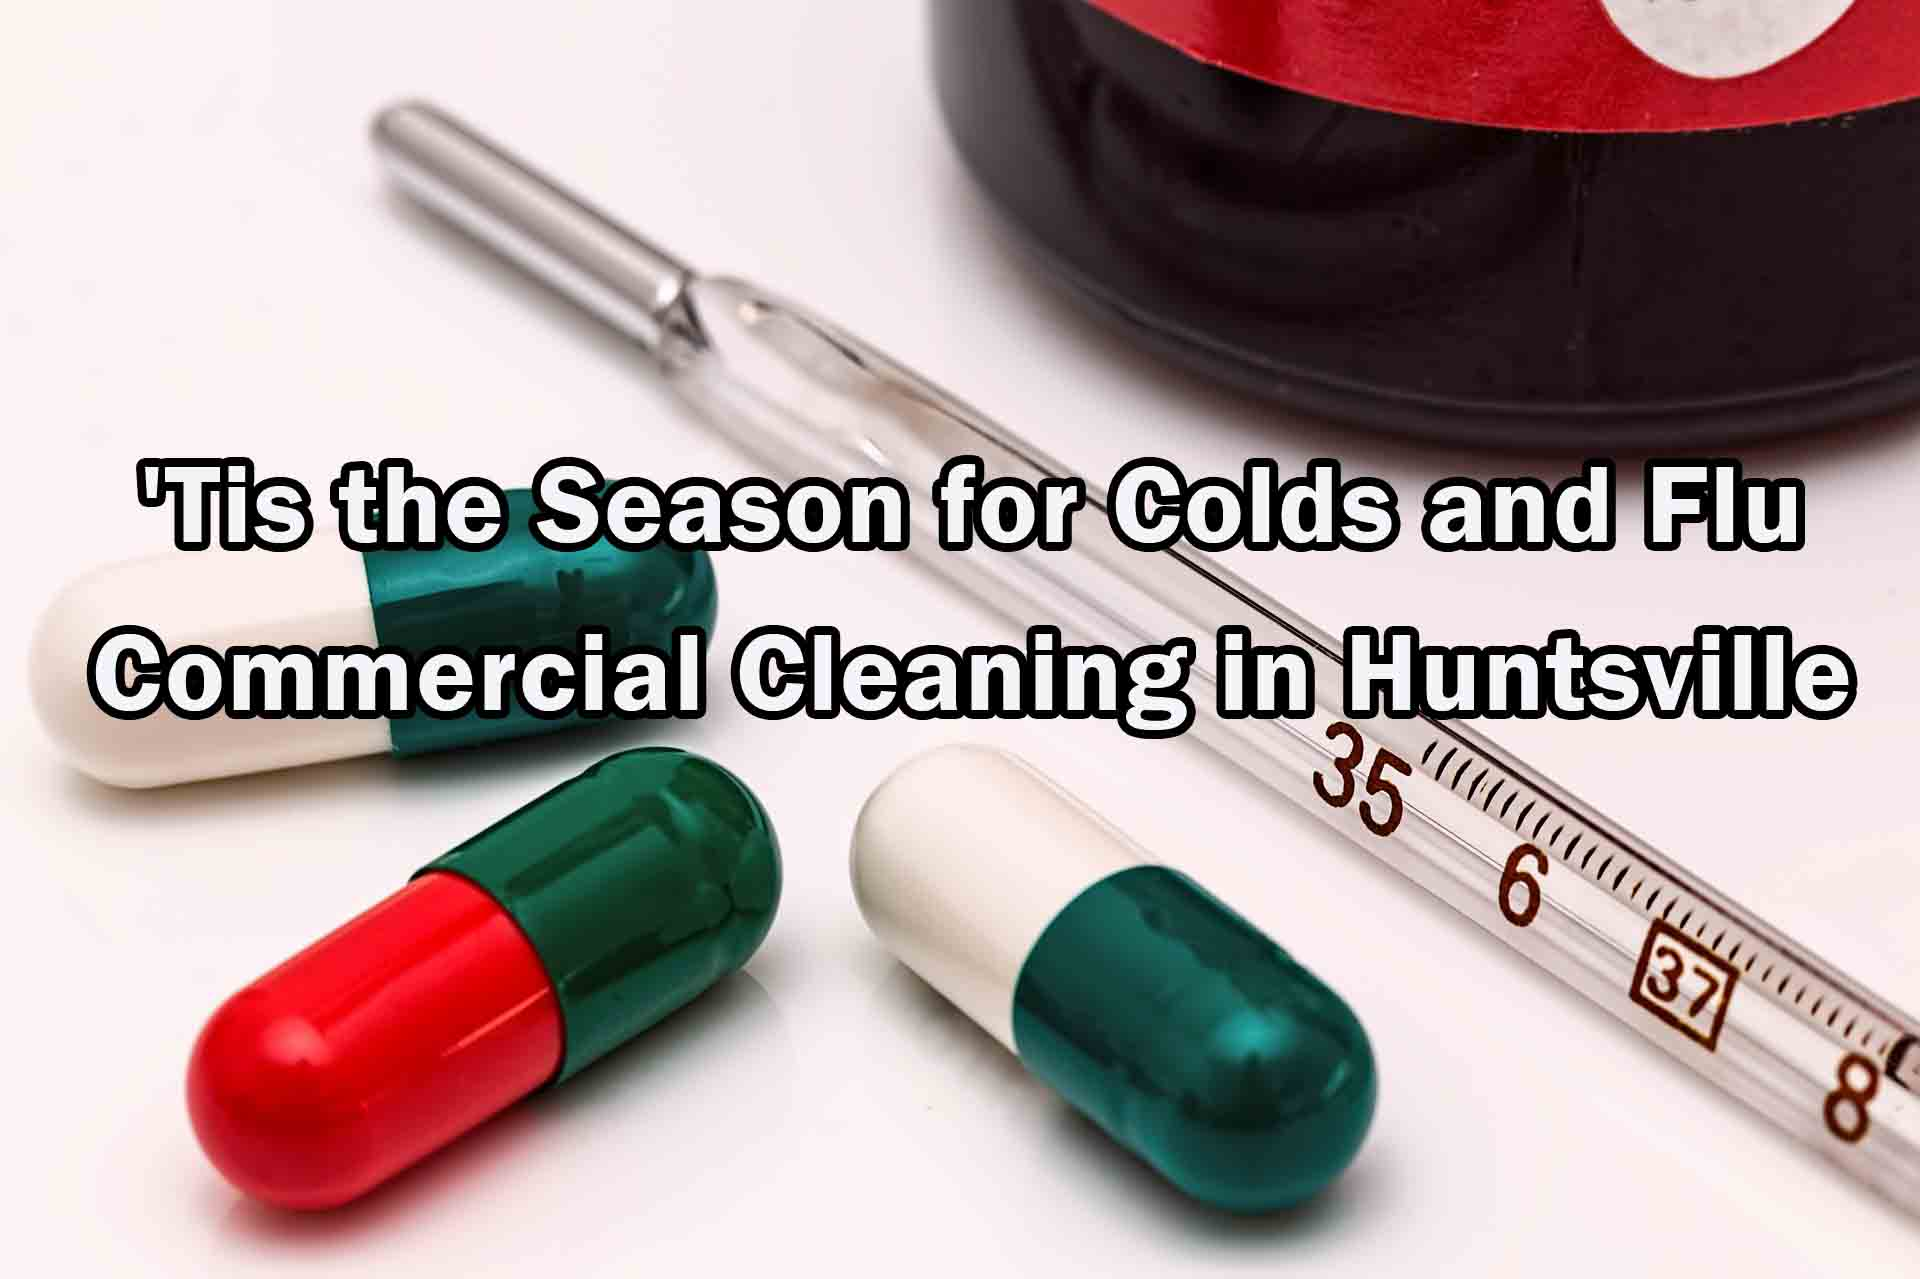 'Tis the Season for Colds and Flu - Commercial Cleaning in Huntsville